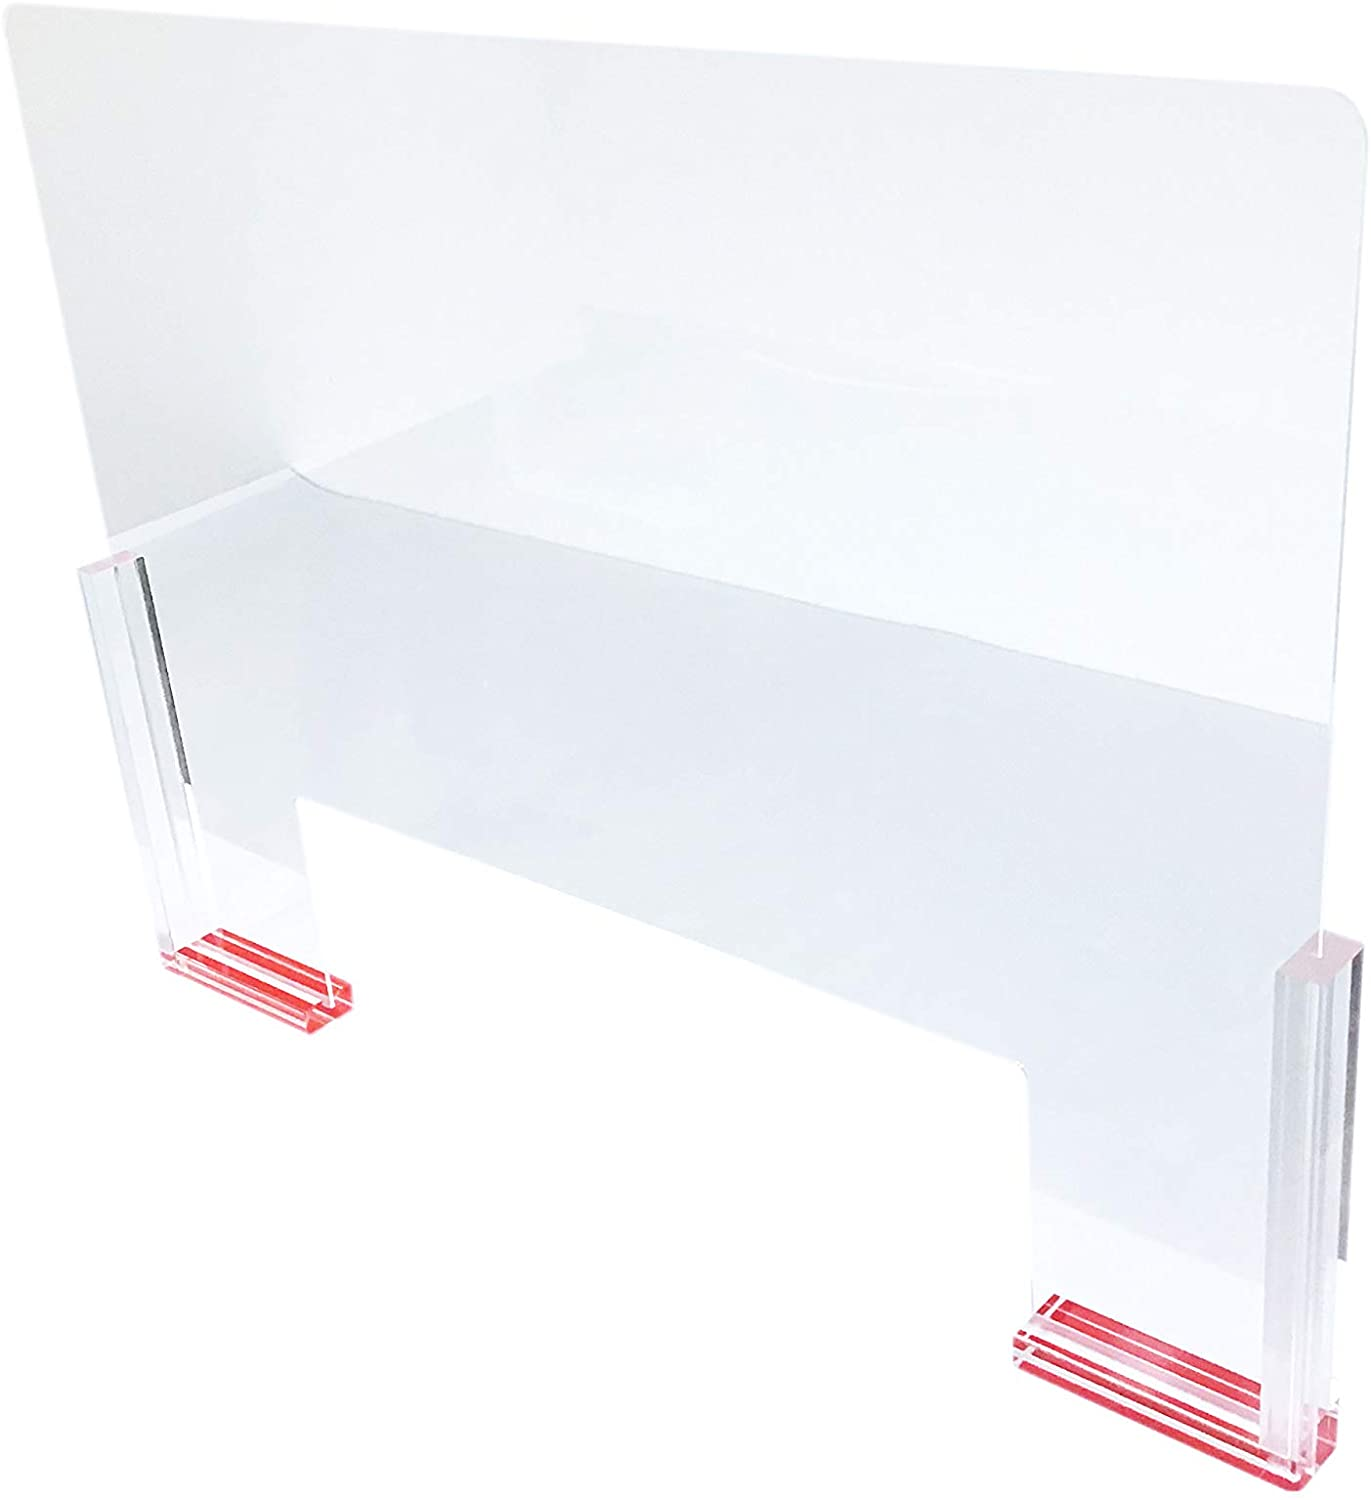 1 Qty - Extra Large Acrylic Glass Sneeze Guard (31 1/2 x 24) w/Adhesive Mount Base - For Retail/Administration/Reception - NicePackaging